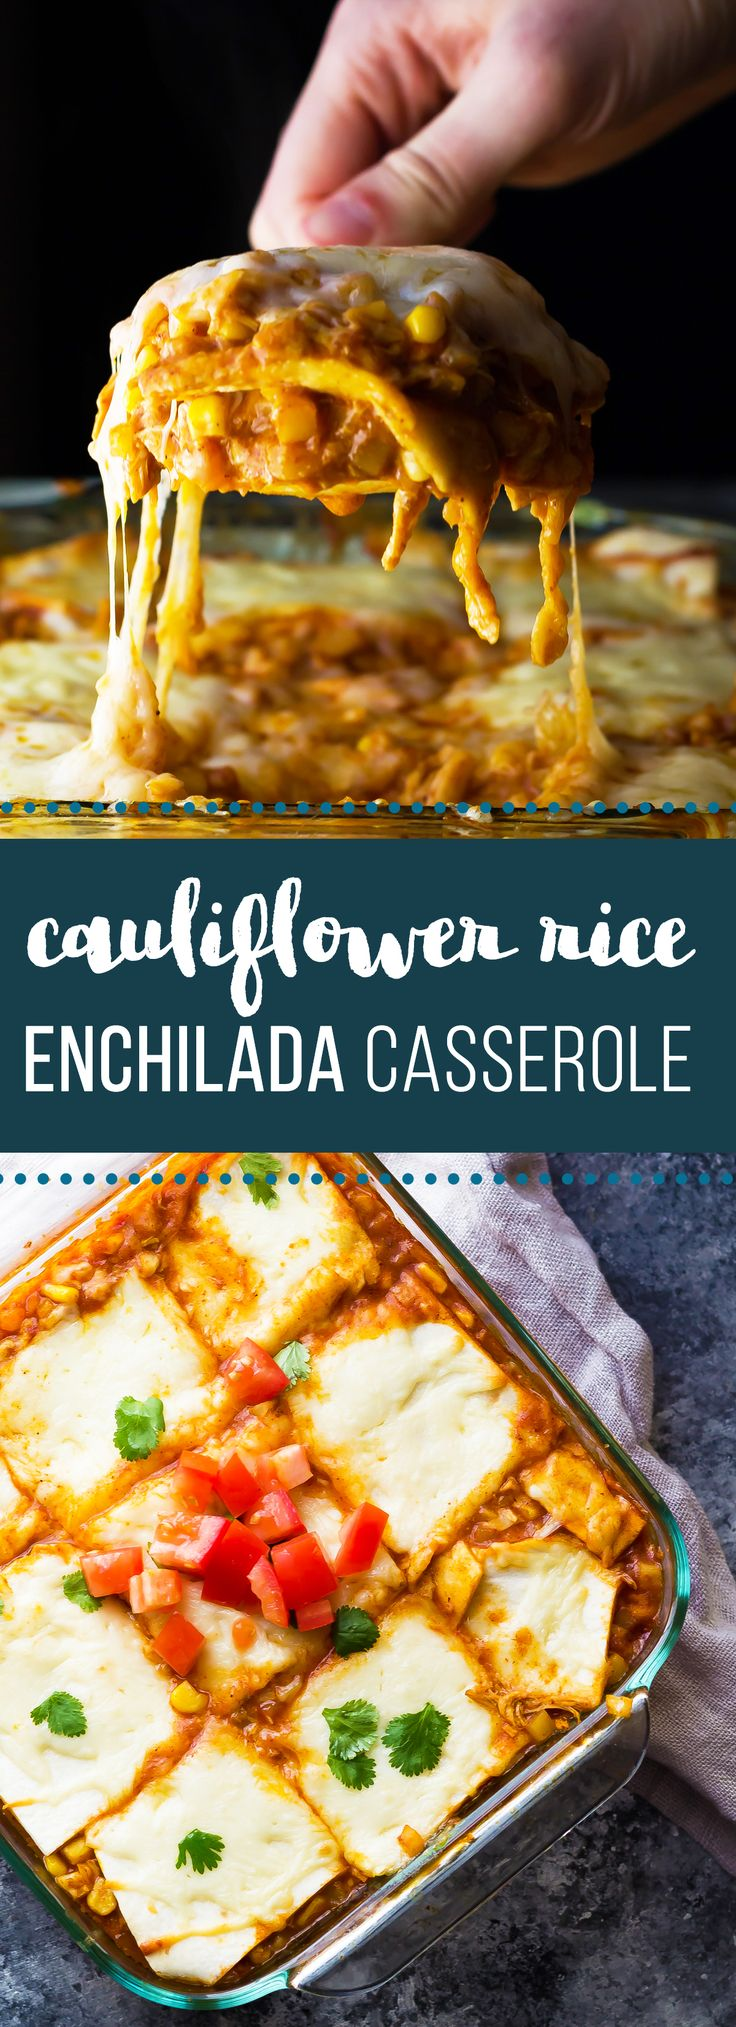 This Cauliflower Rice Chicken Enchilada Casserole is an easy, healthy dinner recipe.